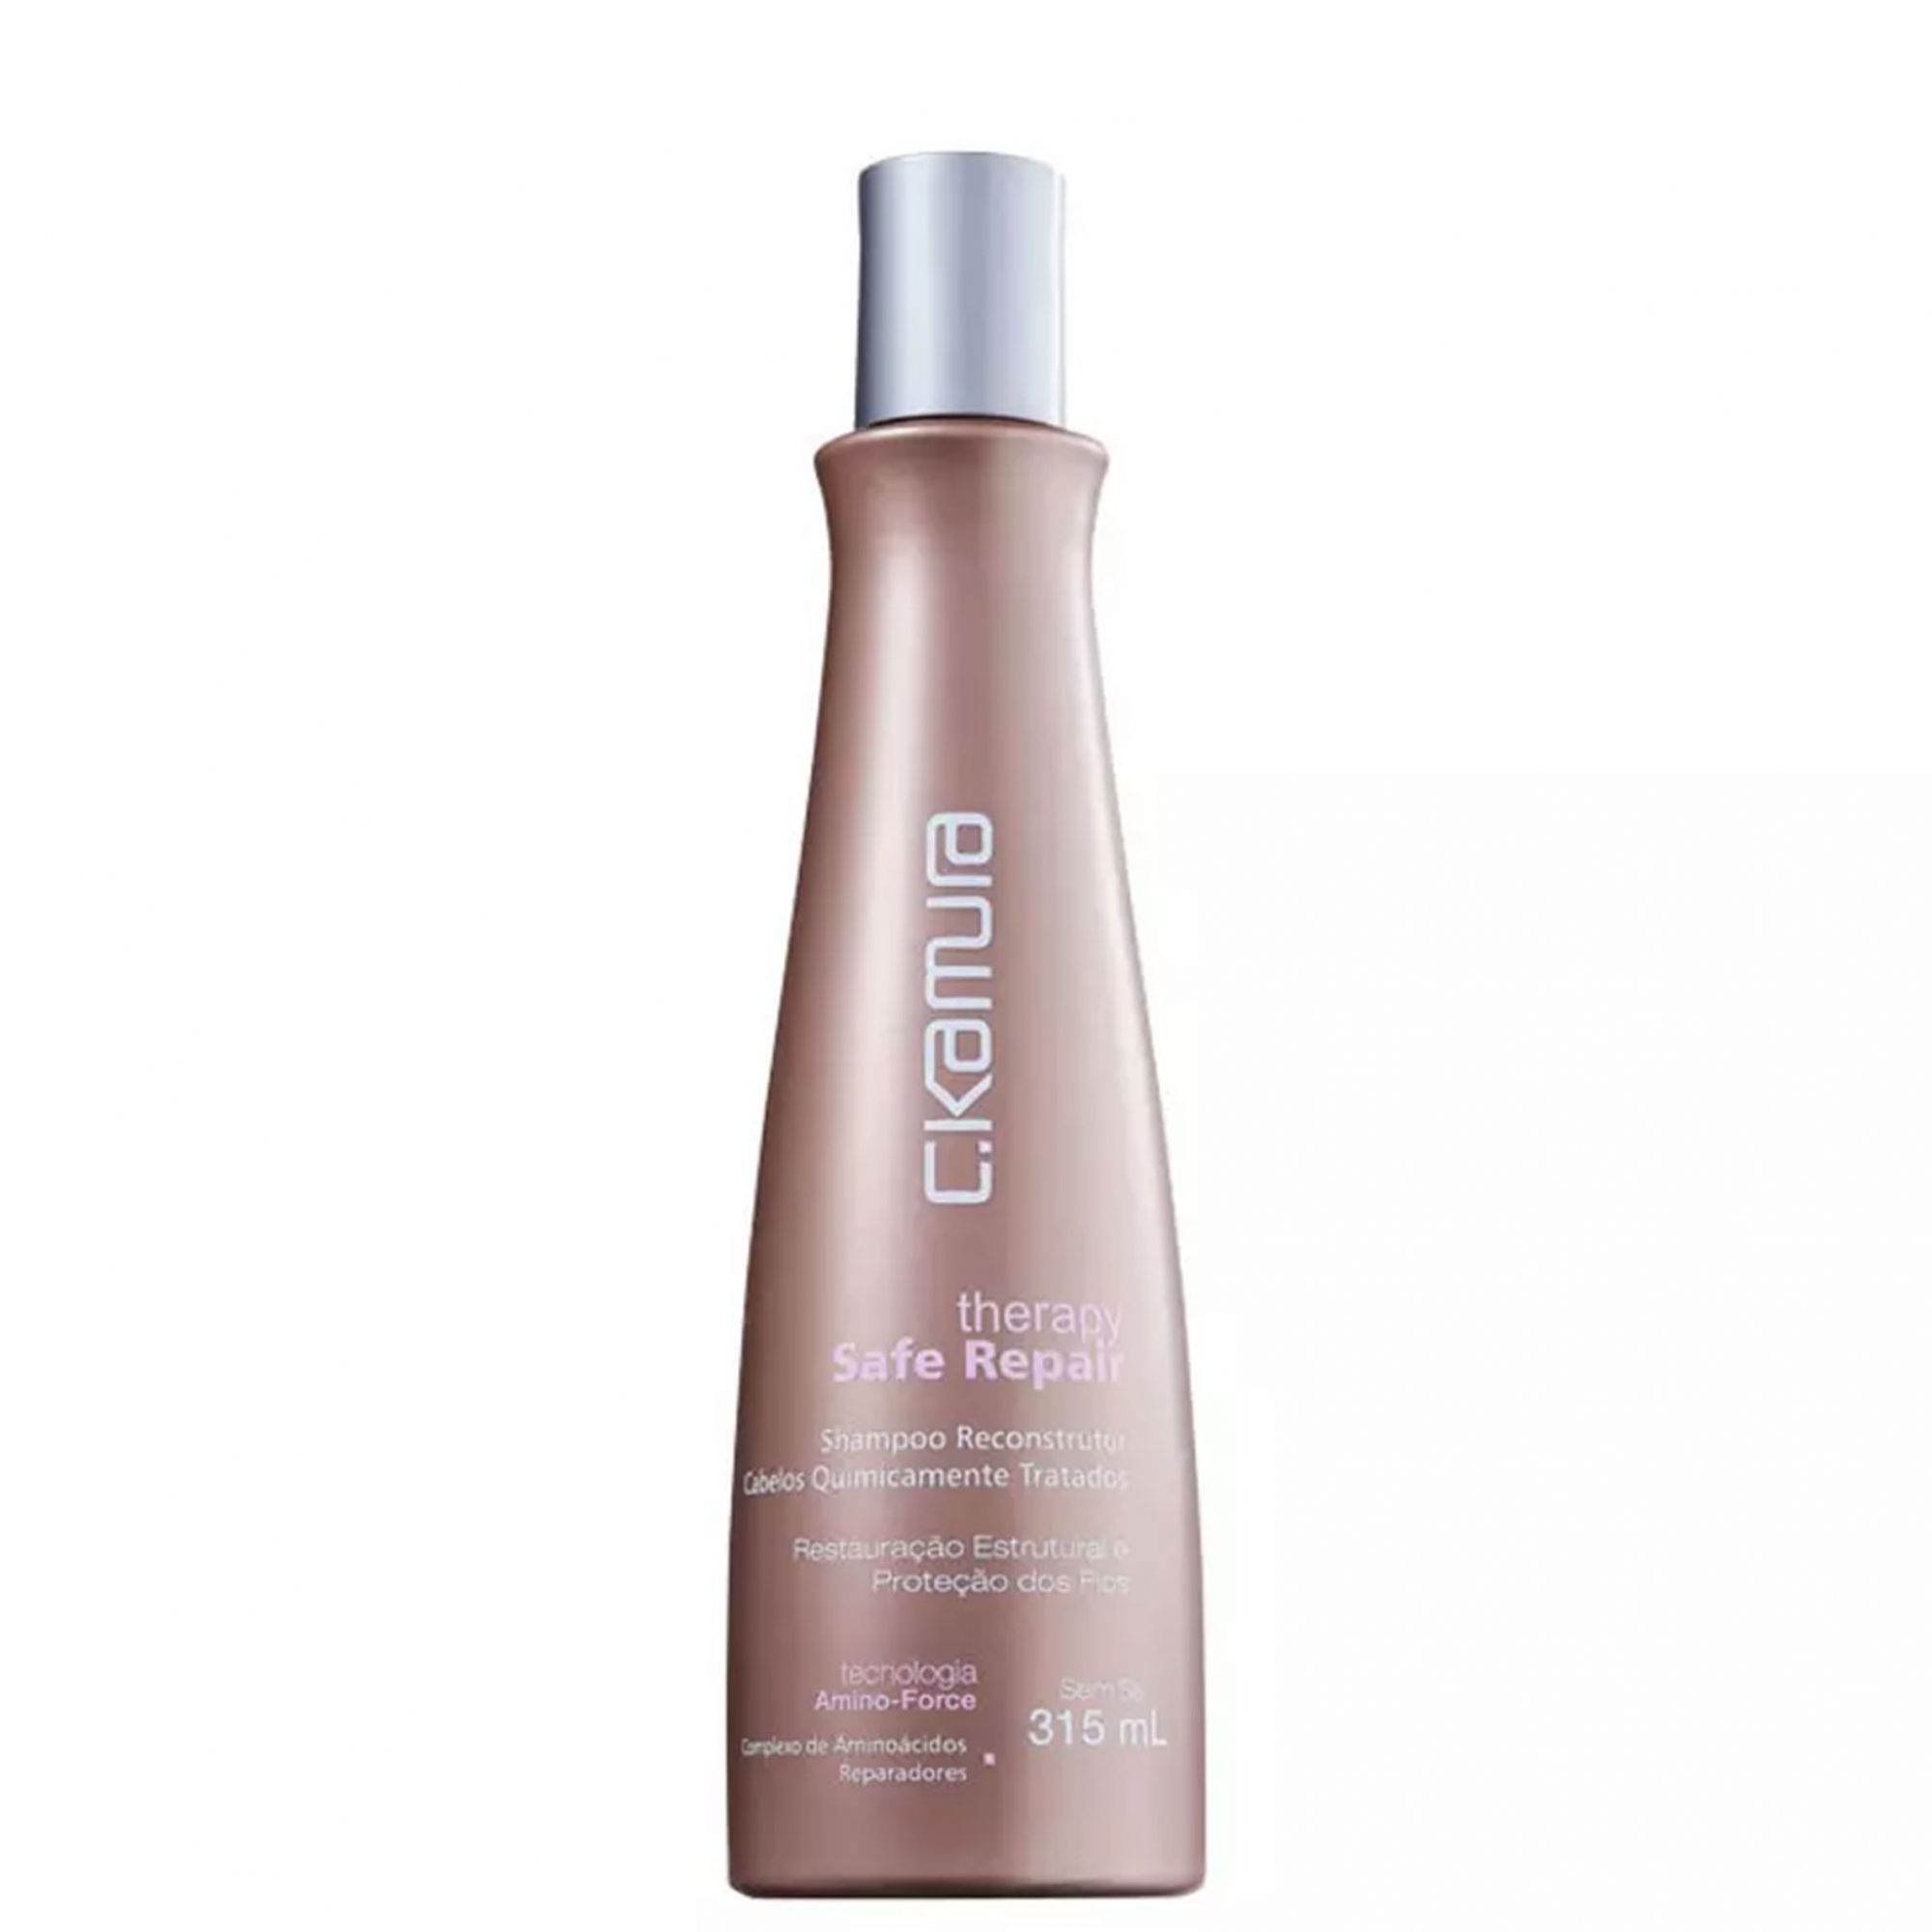 Shampoo Celso Kamura Therapy Safe Repair 315ml.